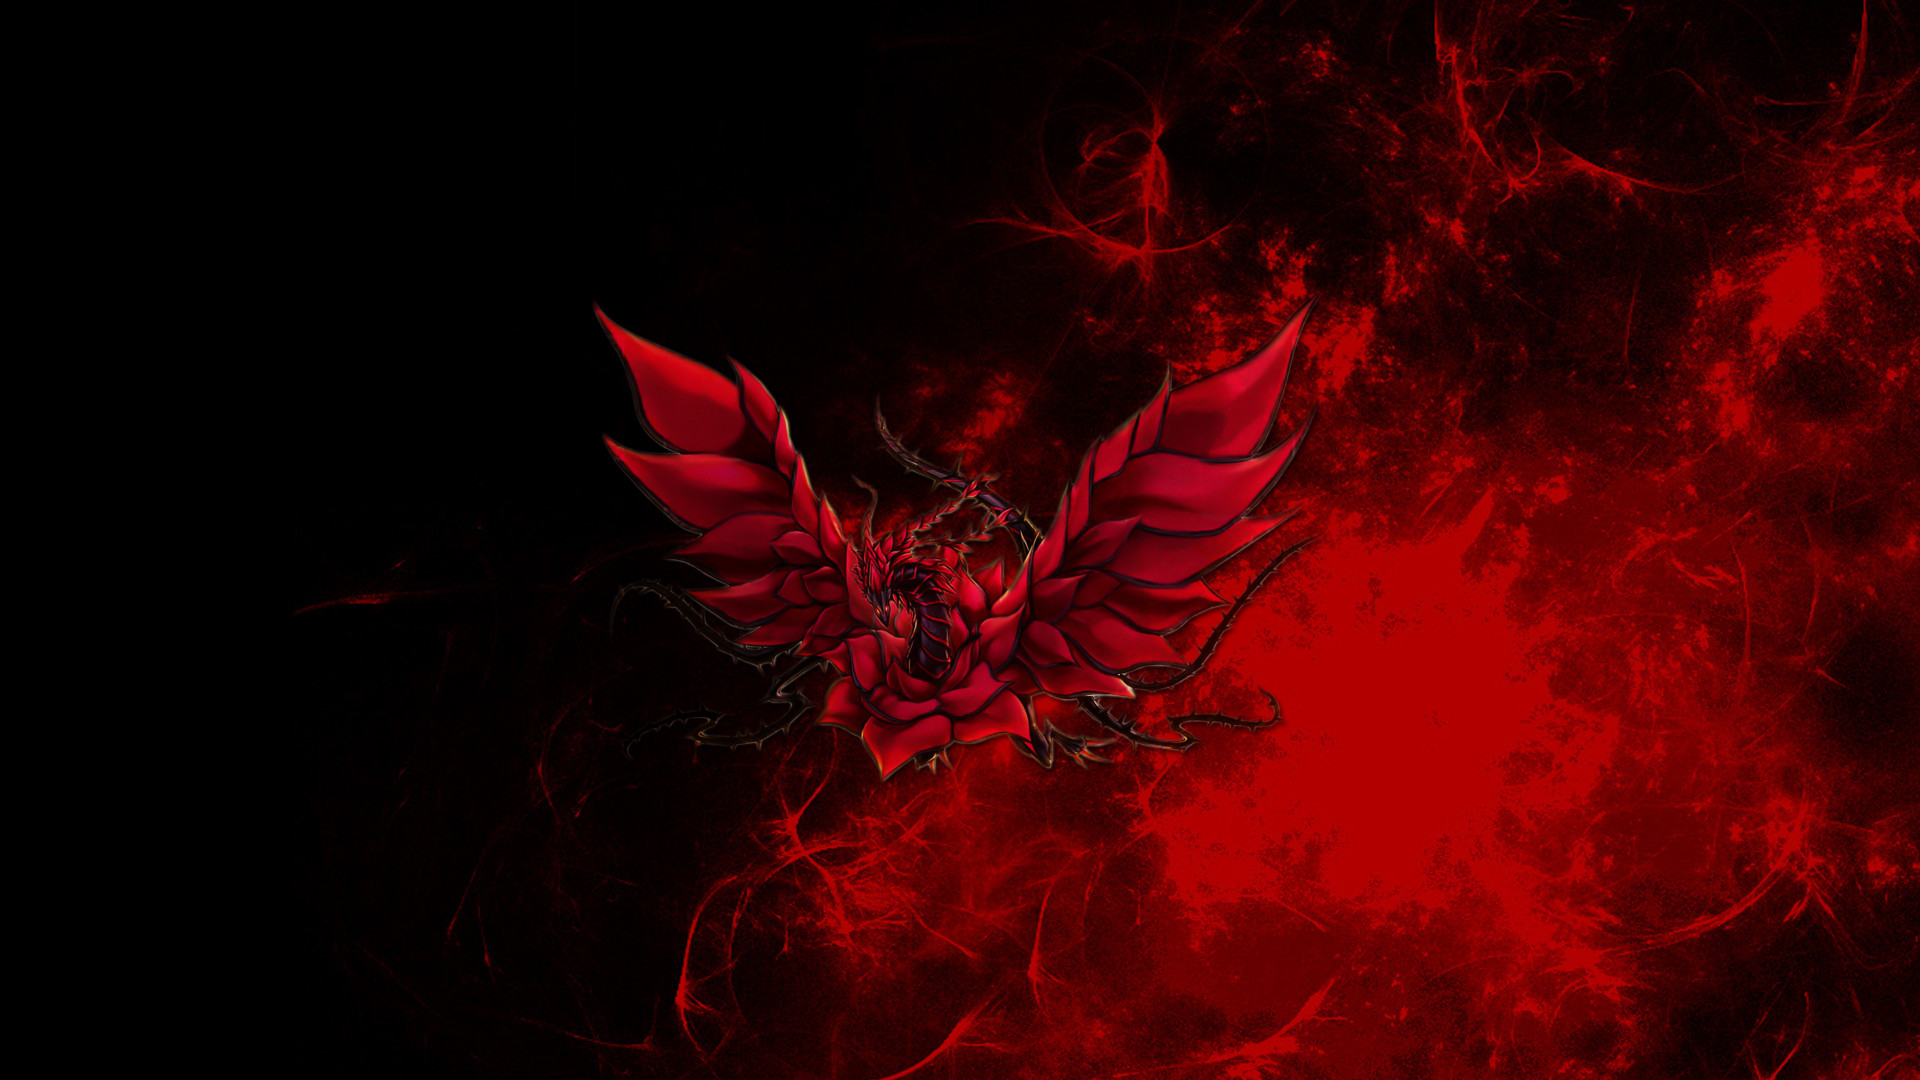 1920x1080 DeviantArt: More Like Black Rose Dragon Wallpaper by RJGiel